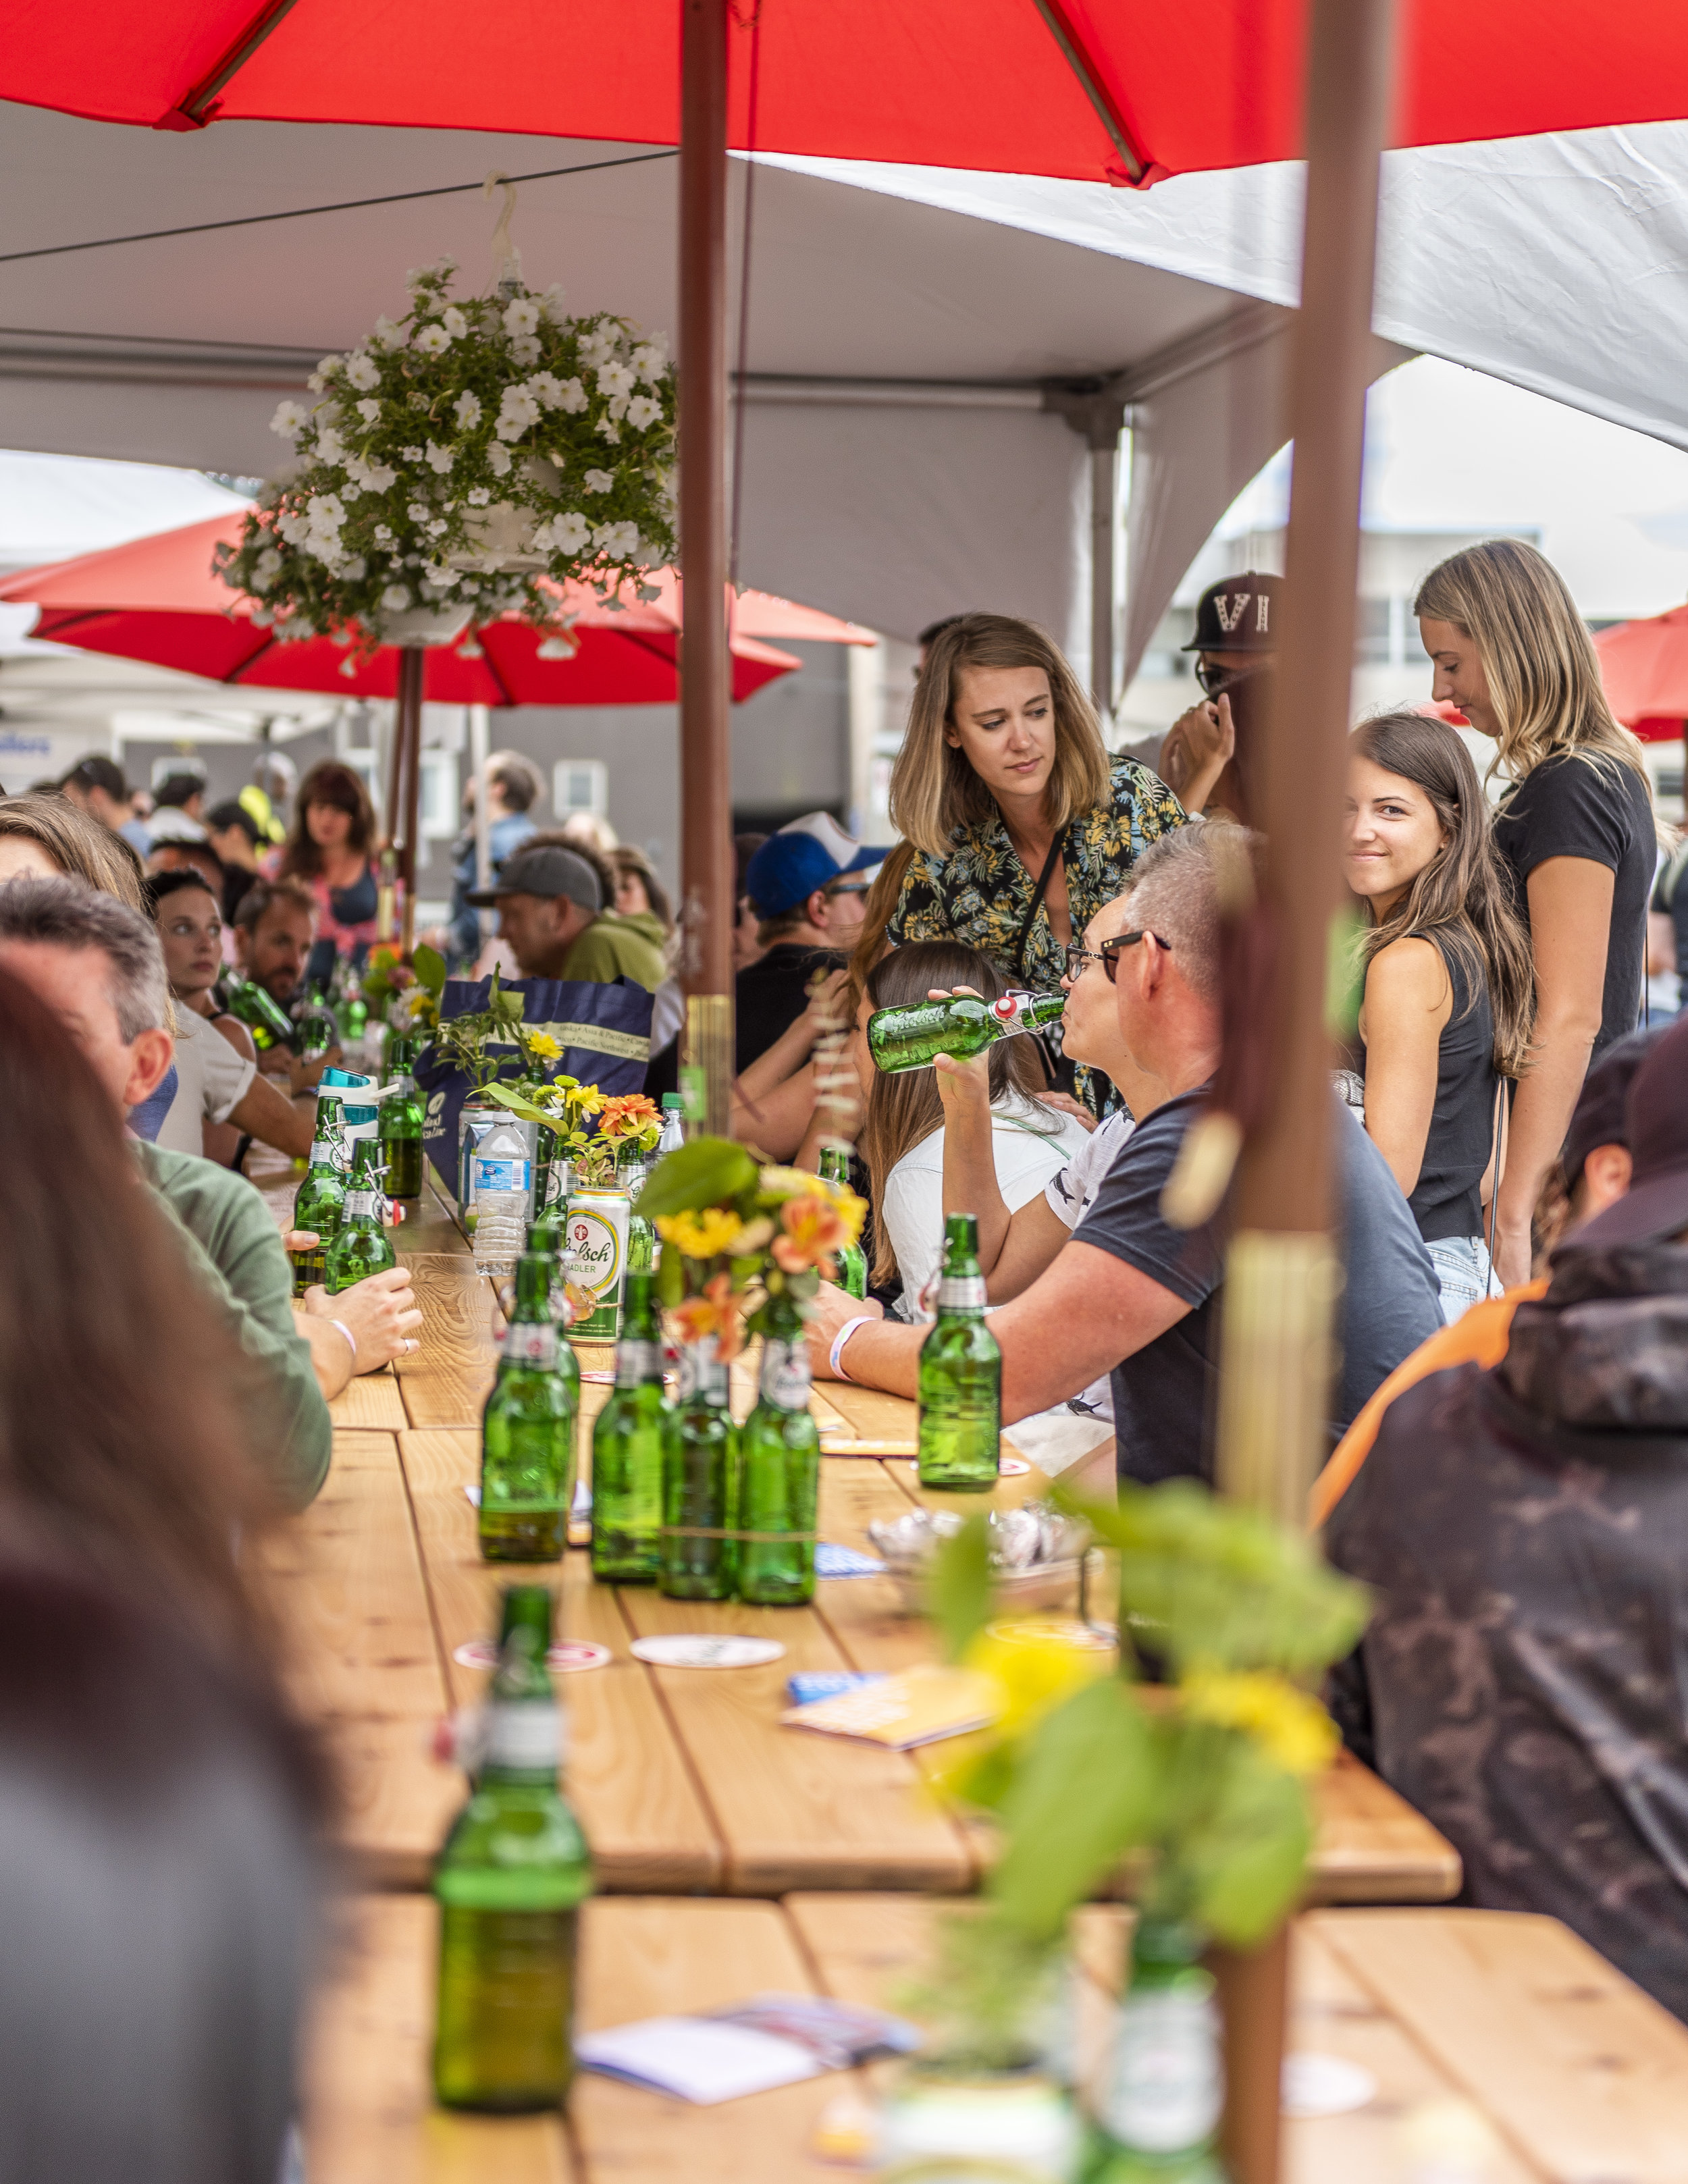 - Beer Gardens are and always have been a huge part of VMF. Yes, we love gathering people together into a 14 block span to celebrate and take part in the arts, but adding tasty beers to the mix just makes it that much better. This year we're bringing you FOUR all ages family friendly/dog friendly Beer Gardens to hang out in with a drink in hand all while taking in the surrounding live music, painting, markets, and interactive fun. Here is a breakdown of all you need to know in each one.Grolsch UNPOPPED Music LoungeWhere: Main and BroadwayWhen: 12PM - 7PMGrolsch has an impressive history behind their brewing, so naturally they'll be providing a Beer Garden of great caliber. Their UNPOPPED Music Lounge is all ages, family friendly is located conveniently central in the festival, making it impossible for you to not walk by it, so you may as well go in it! Live painting and a Music Lounge presented by AIR MILES® Stage Pass featuring local BC talent will be active all day so there is literally no time that wouldn't be a good time to be at the Grolsch UNPOPPED Music Lounge.